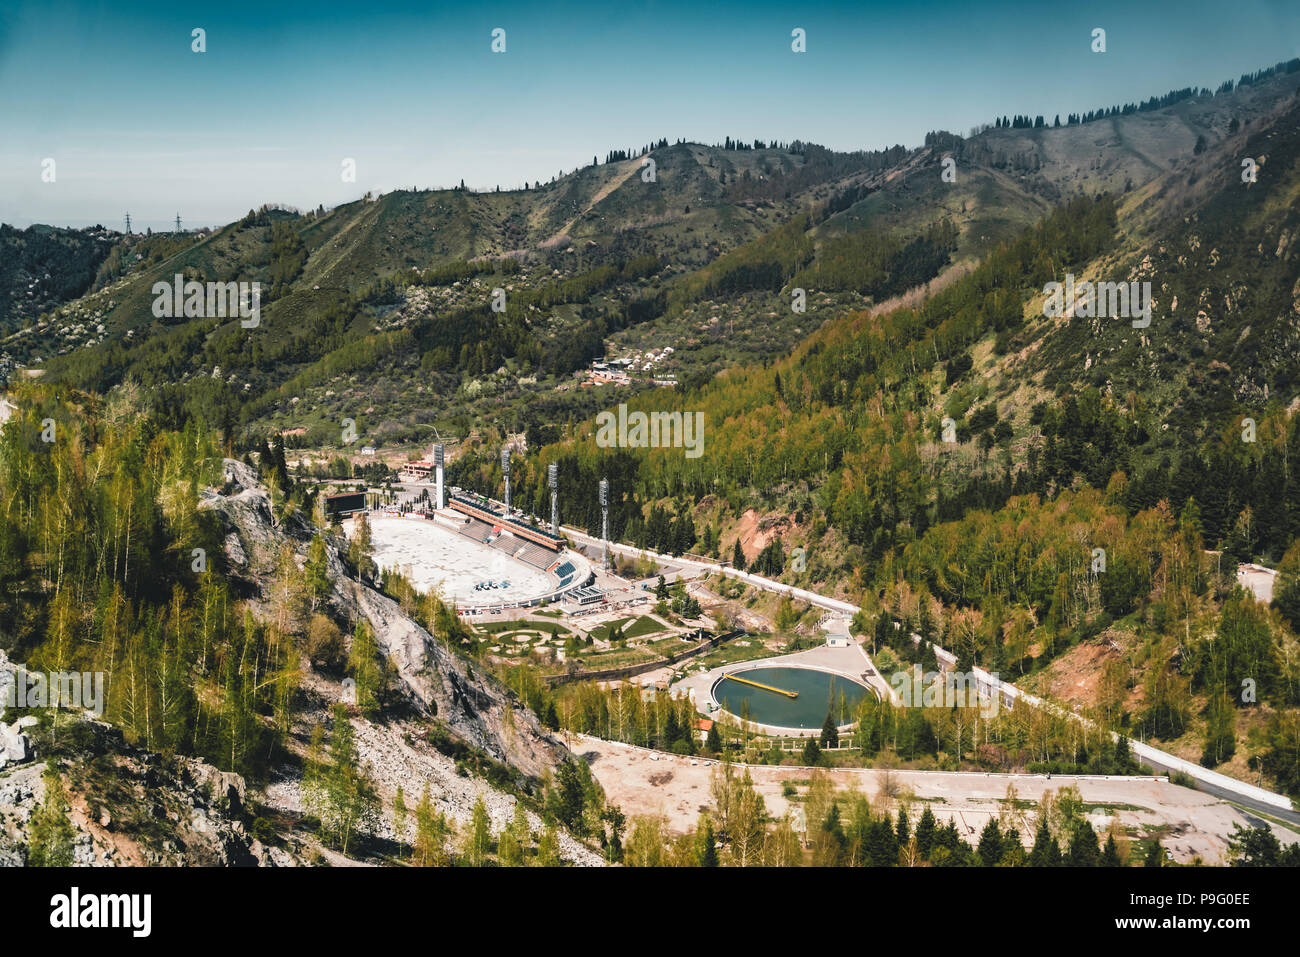 Aerial view of the Medeo stadium in Almaty, Kazakhstan. Medeo stadium is the highest located in the world - 1691 m. above sea level. - Stock Image